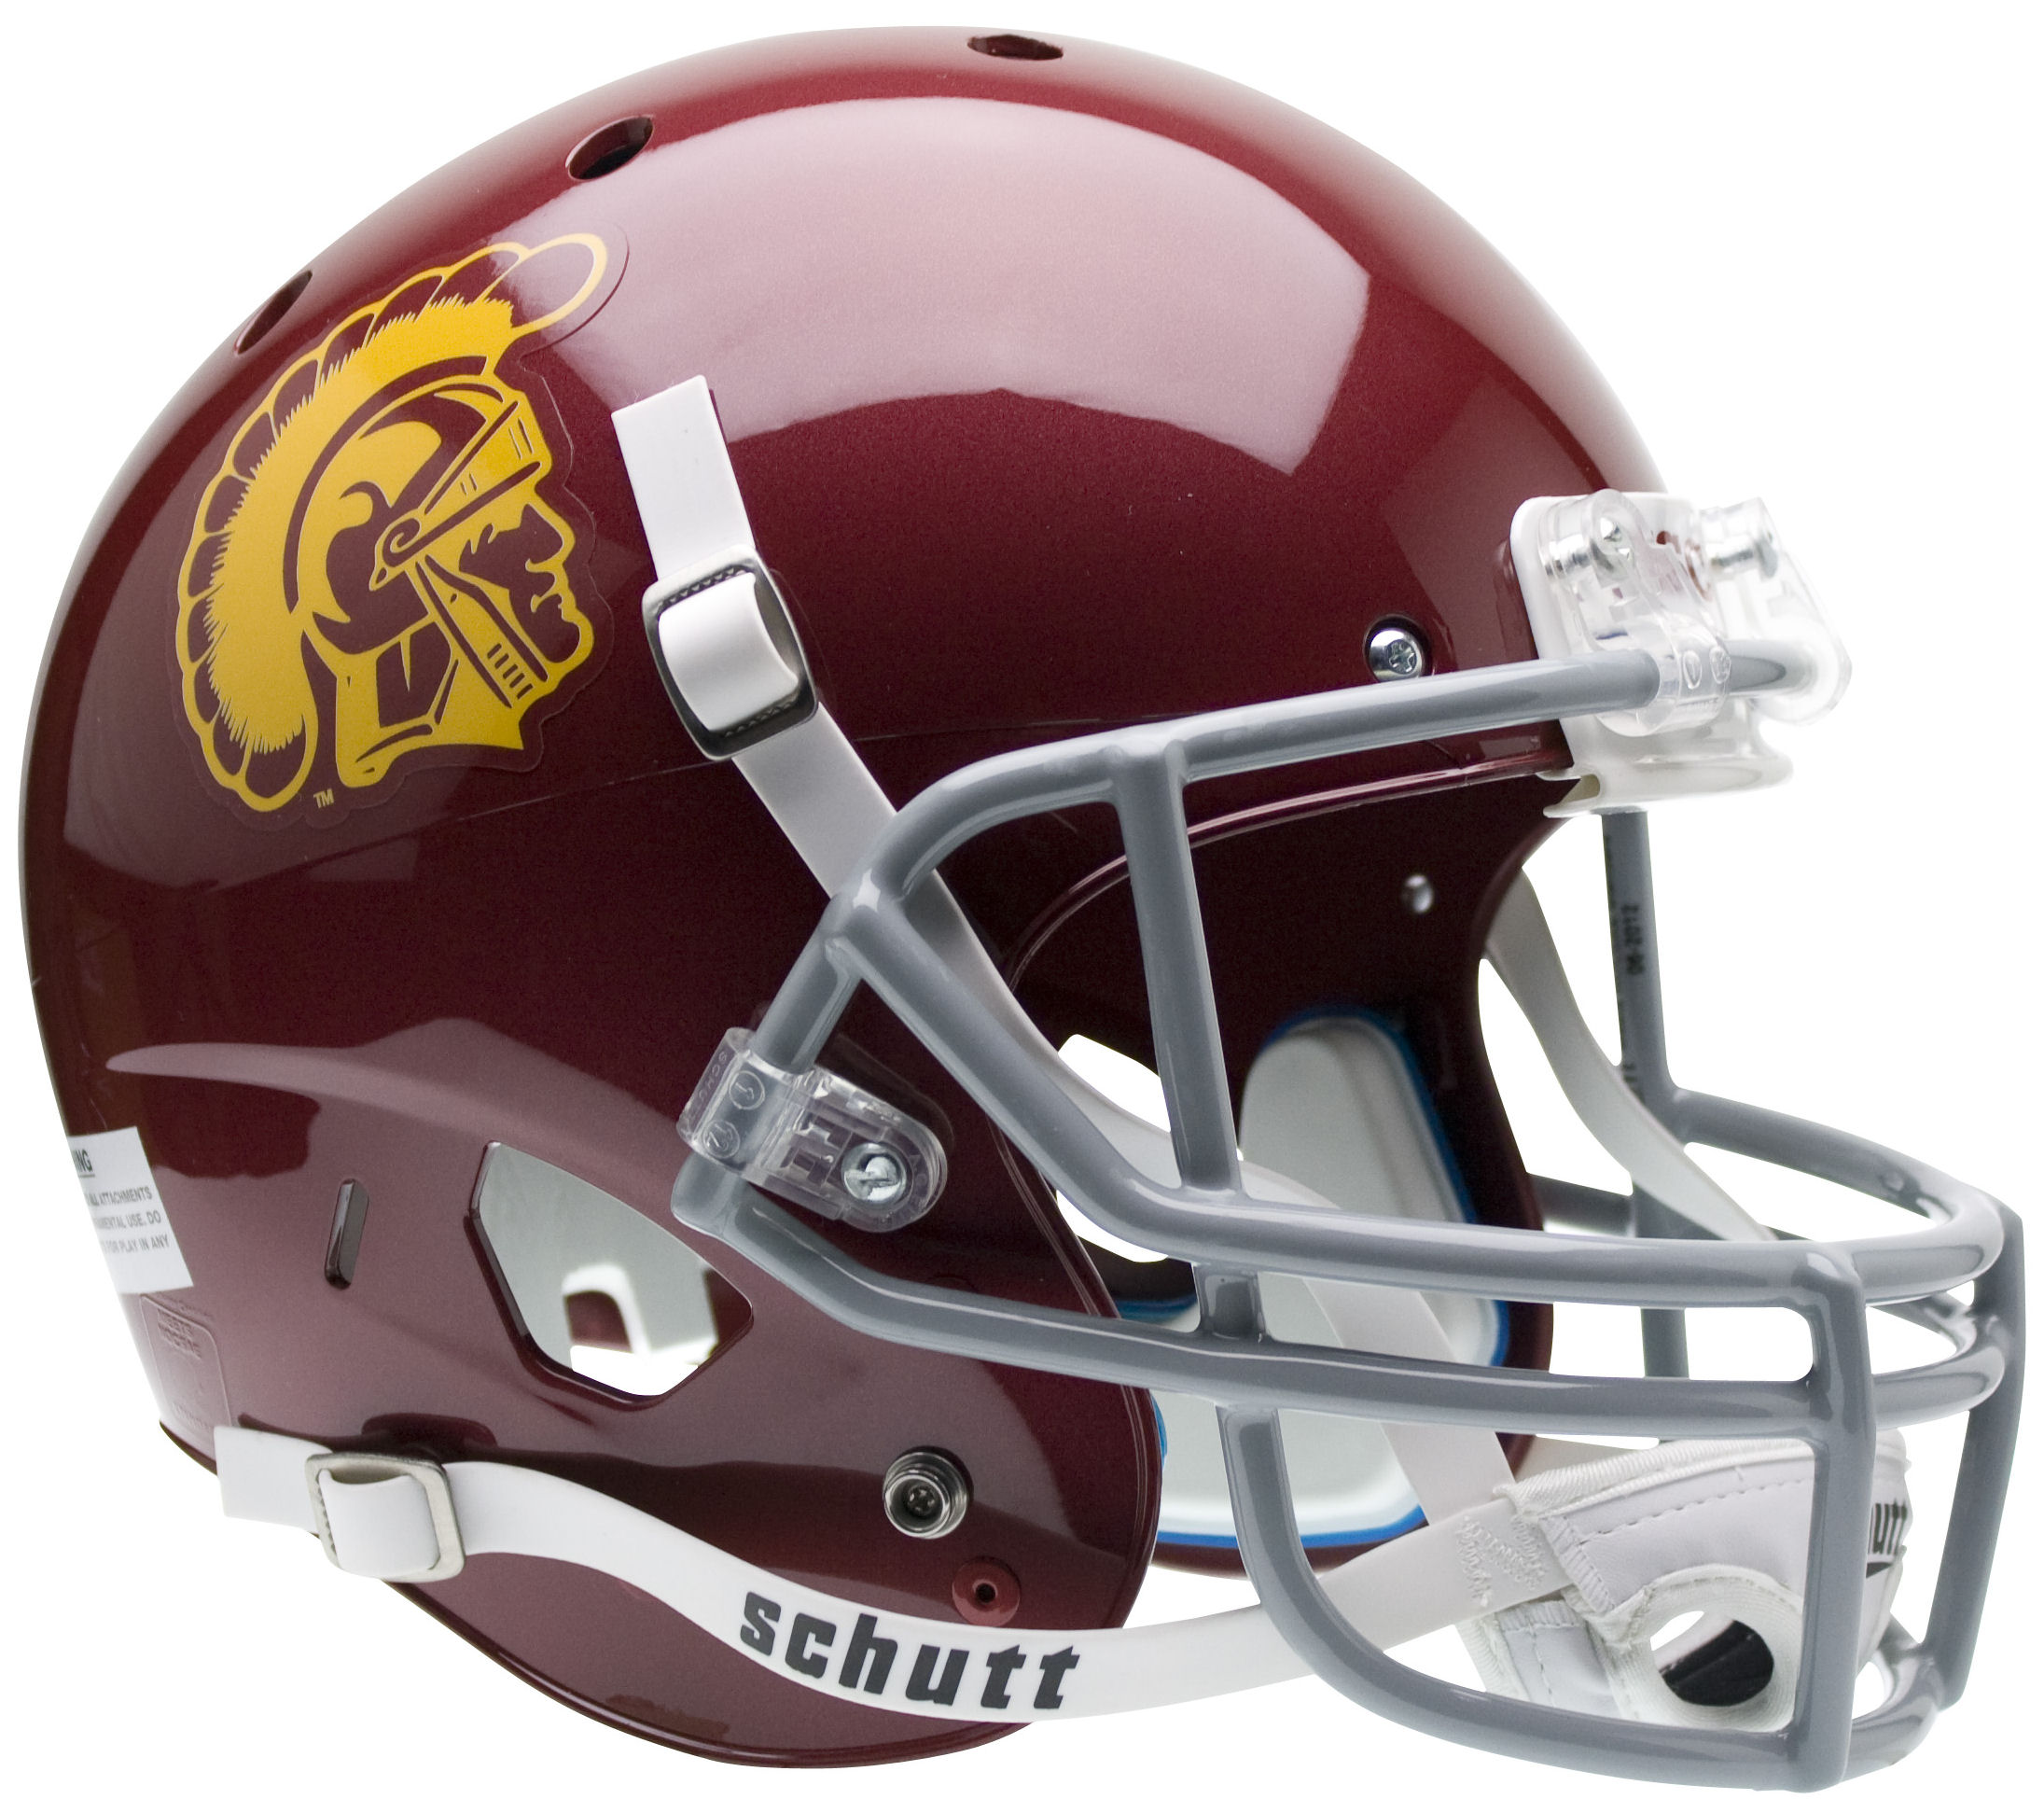 USC Trojans Full XP Replica Football Helmet Schutt